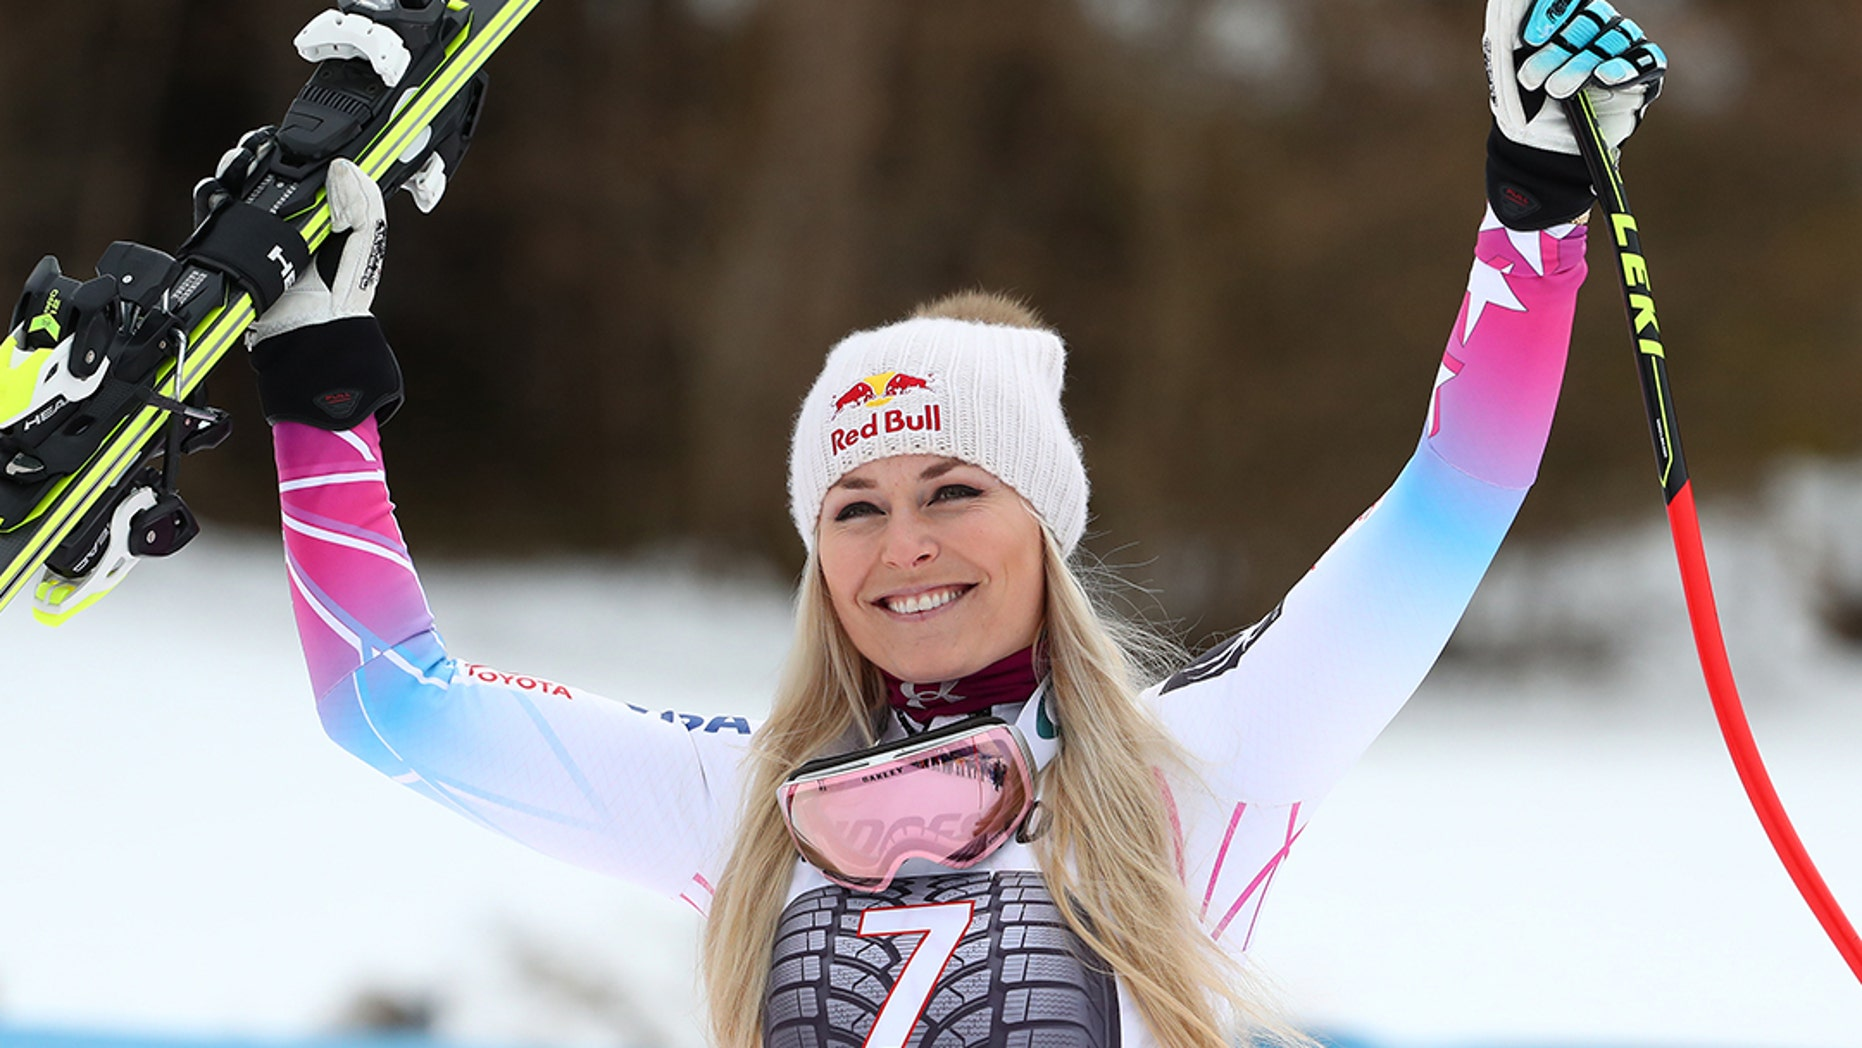 The ski star's flight from Munich to Pyeongchang was seriously delayed.